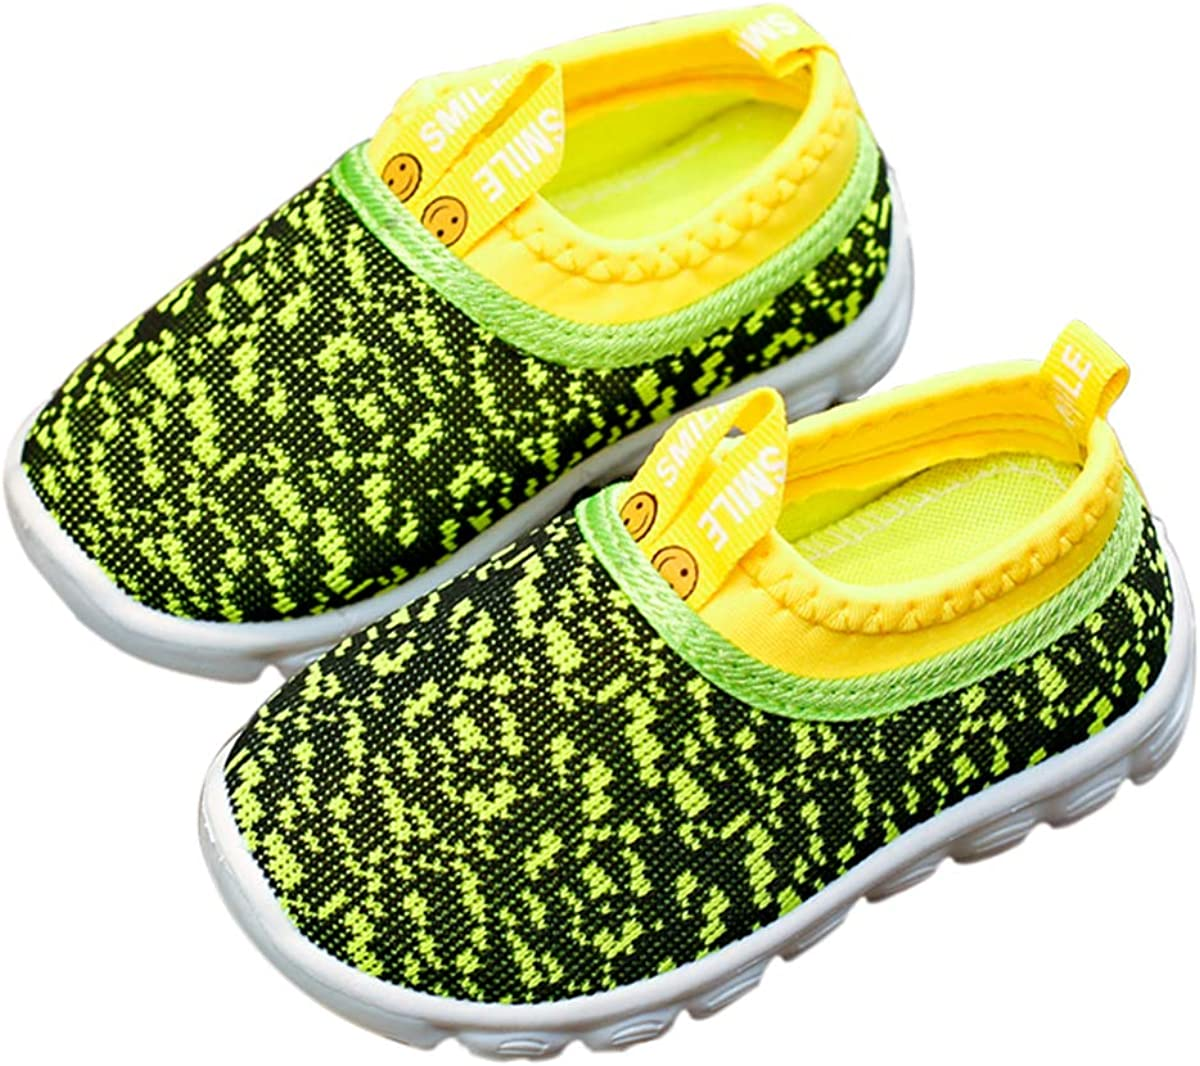 DEBAIJIA Toddler Shoes 1-4T Baby First-Walking Kid Shoes Speck Trainers Soft Sole Non Slip Mesh Breathable Lightweight PVC Material Slip-on